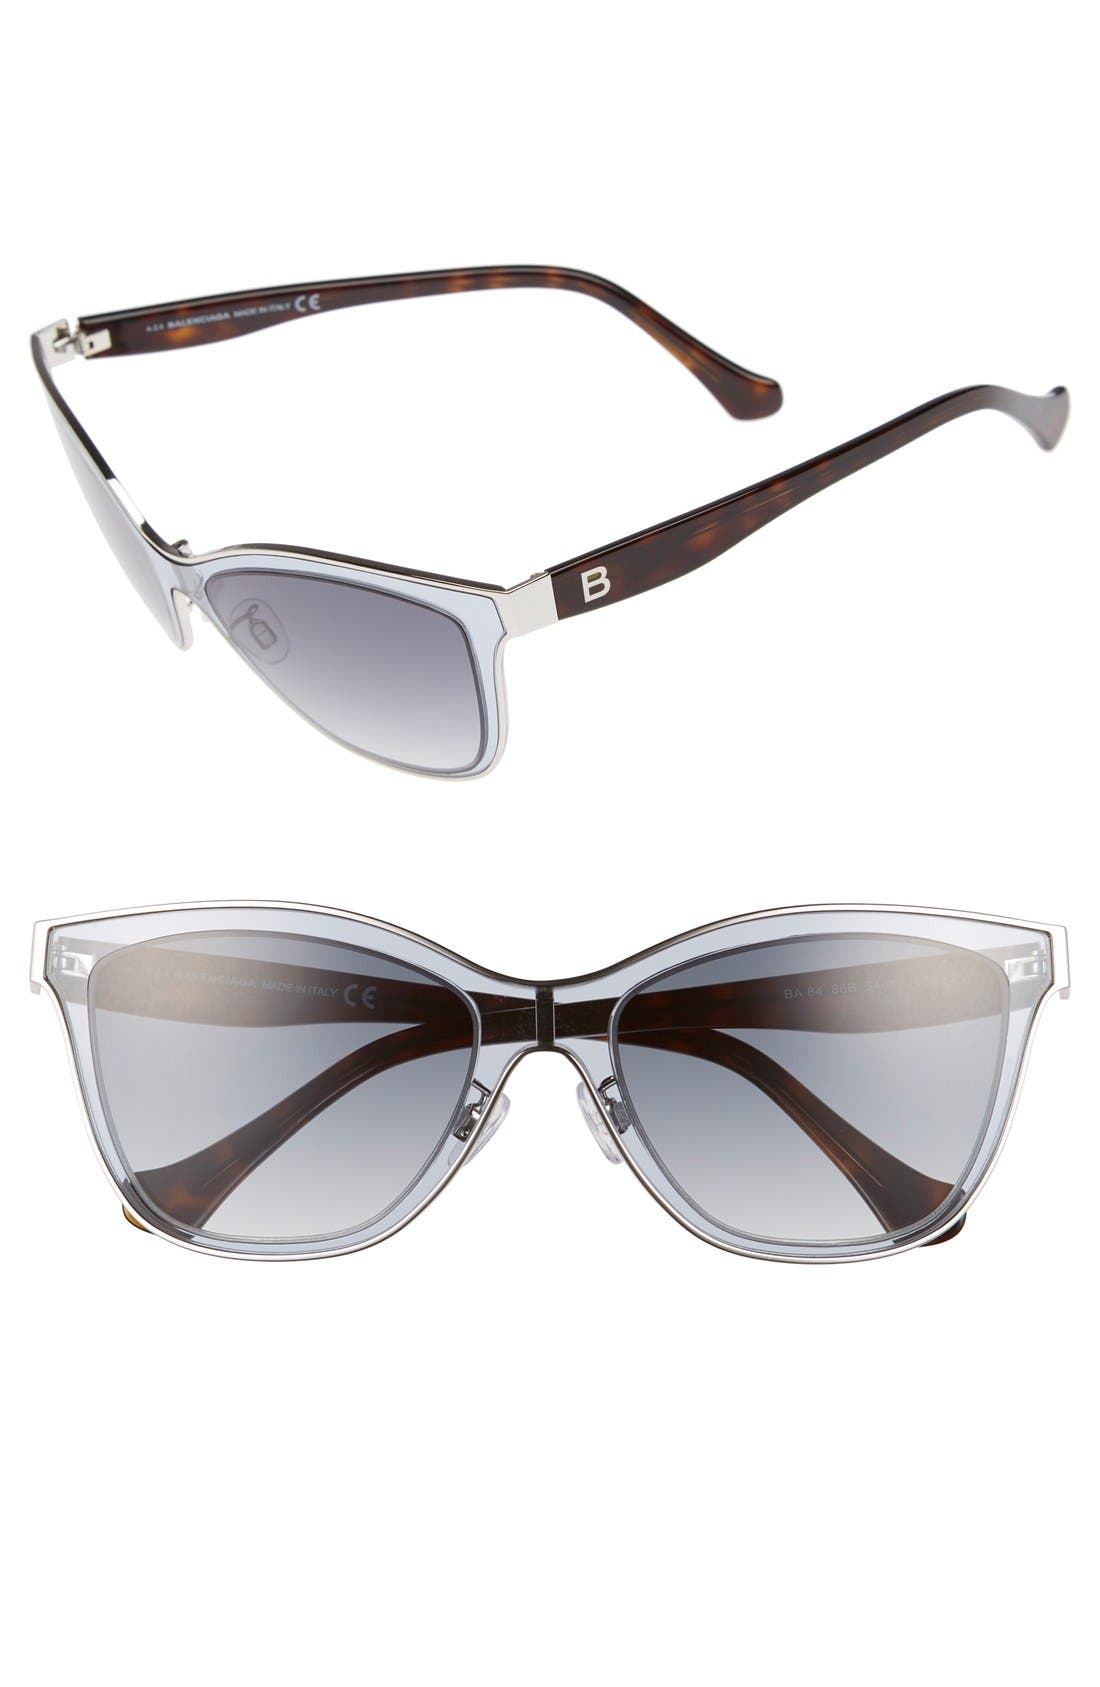 Alternate Image 1 Selected - Balenciaga Paris 54mm Sunglasses